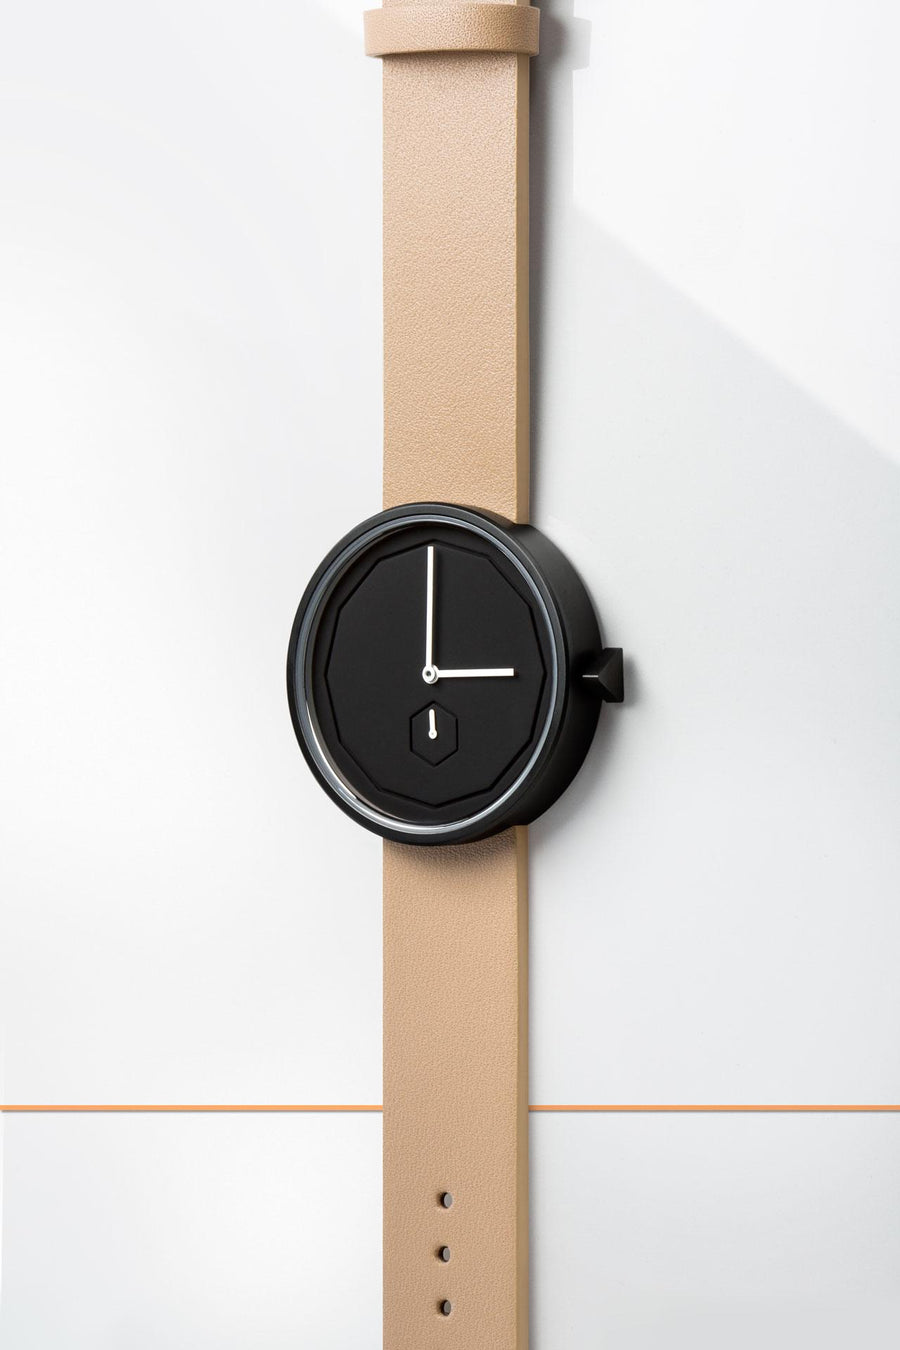 AÃRK Collective Classic Neu Black Steel Leather 38mm Top View